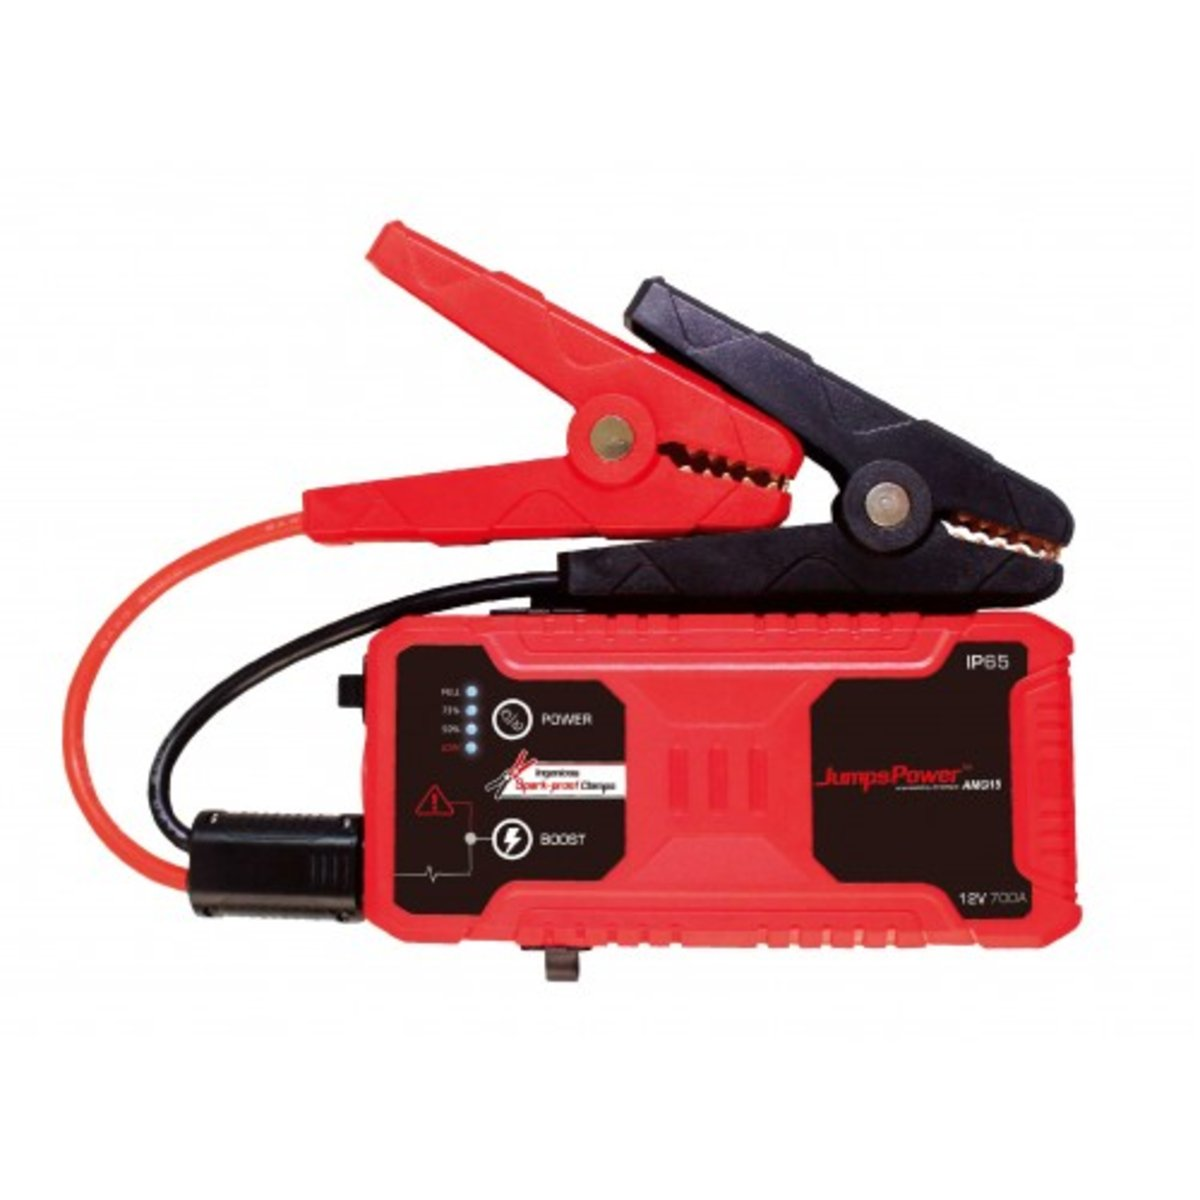 AMG 15 Heavy Duty Jump Starter With Ingenious Spark-proof Clamp